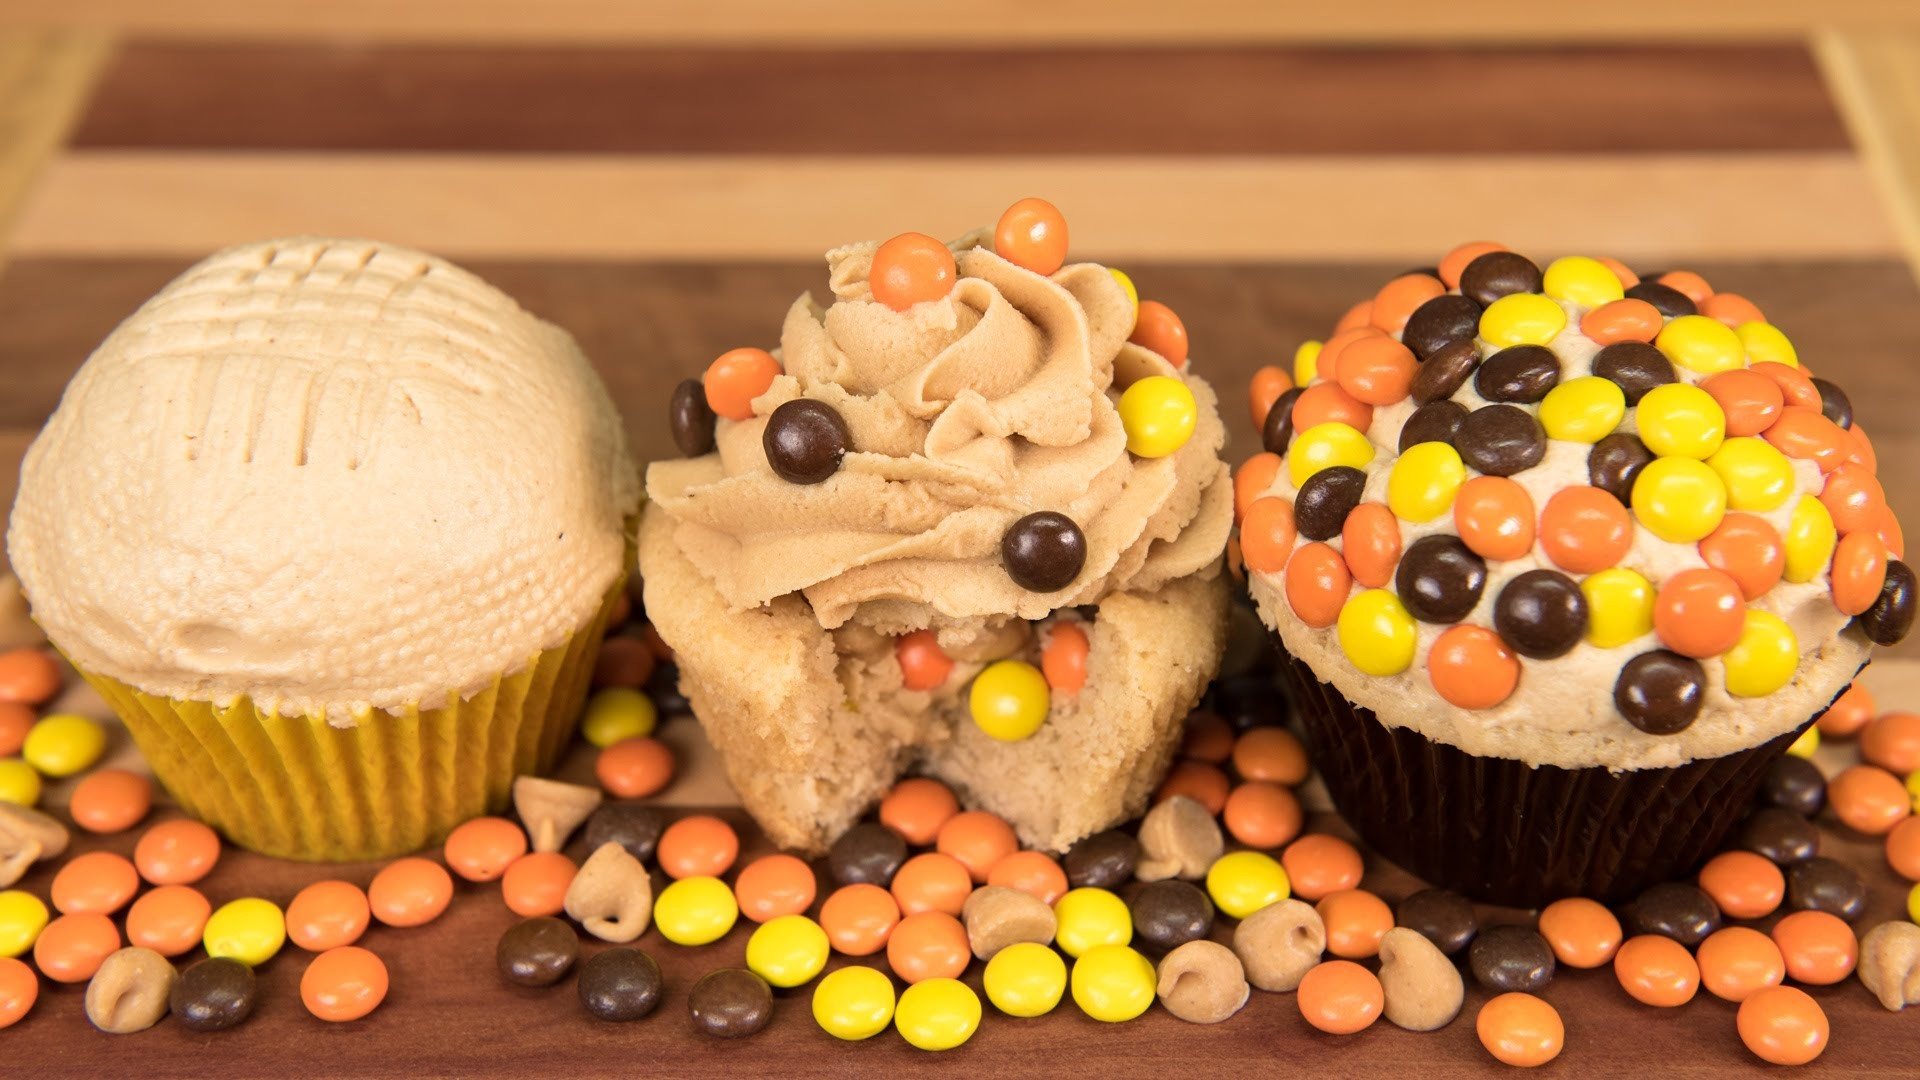 Candy Stuffed Peanut Butter Cupcakes with Peanut Butter Frosting from Cookies Cupcakes and Cardio